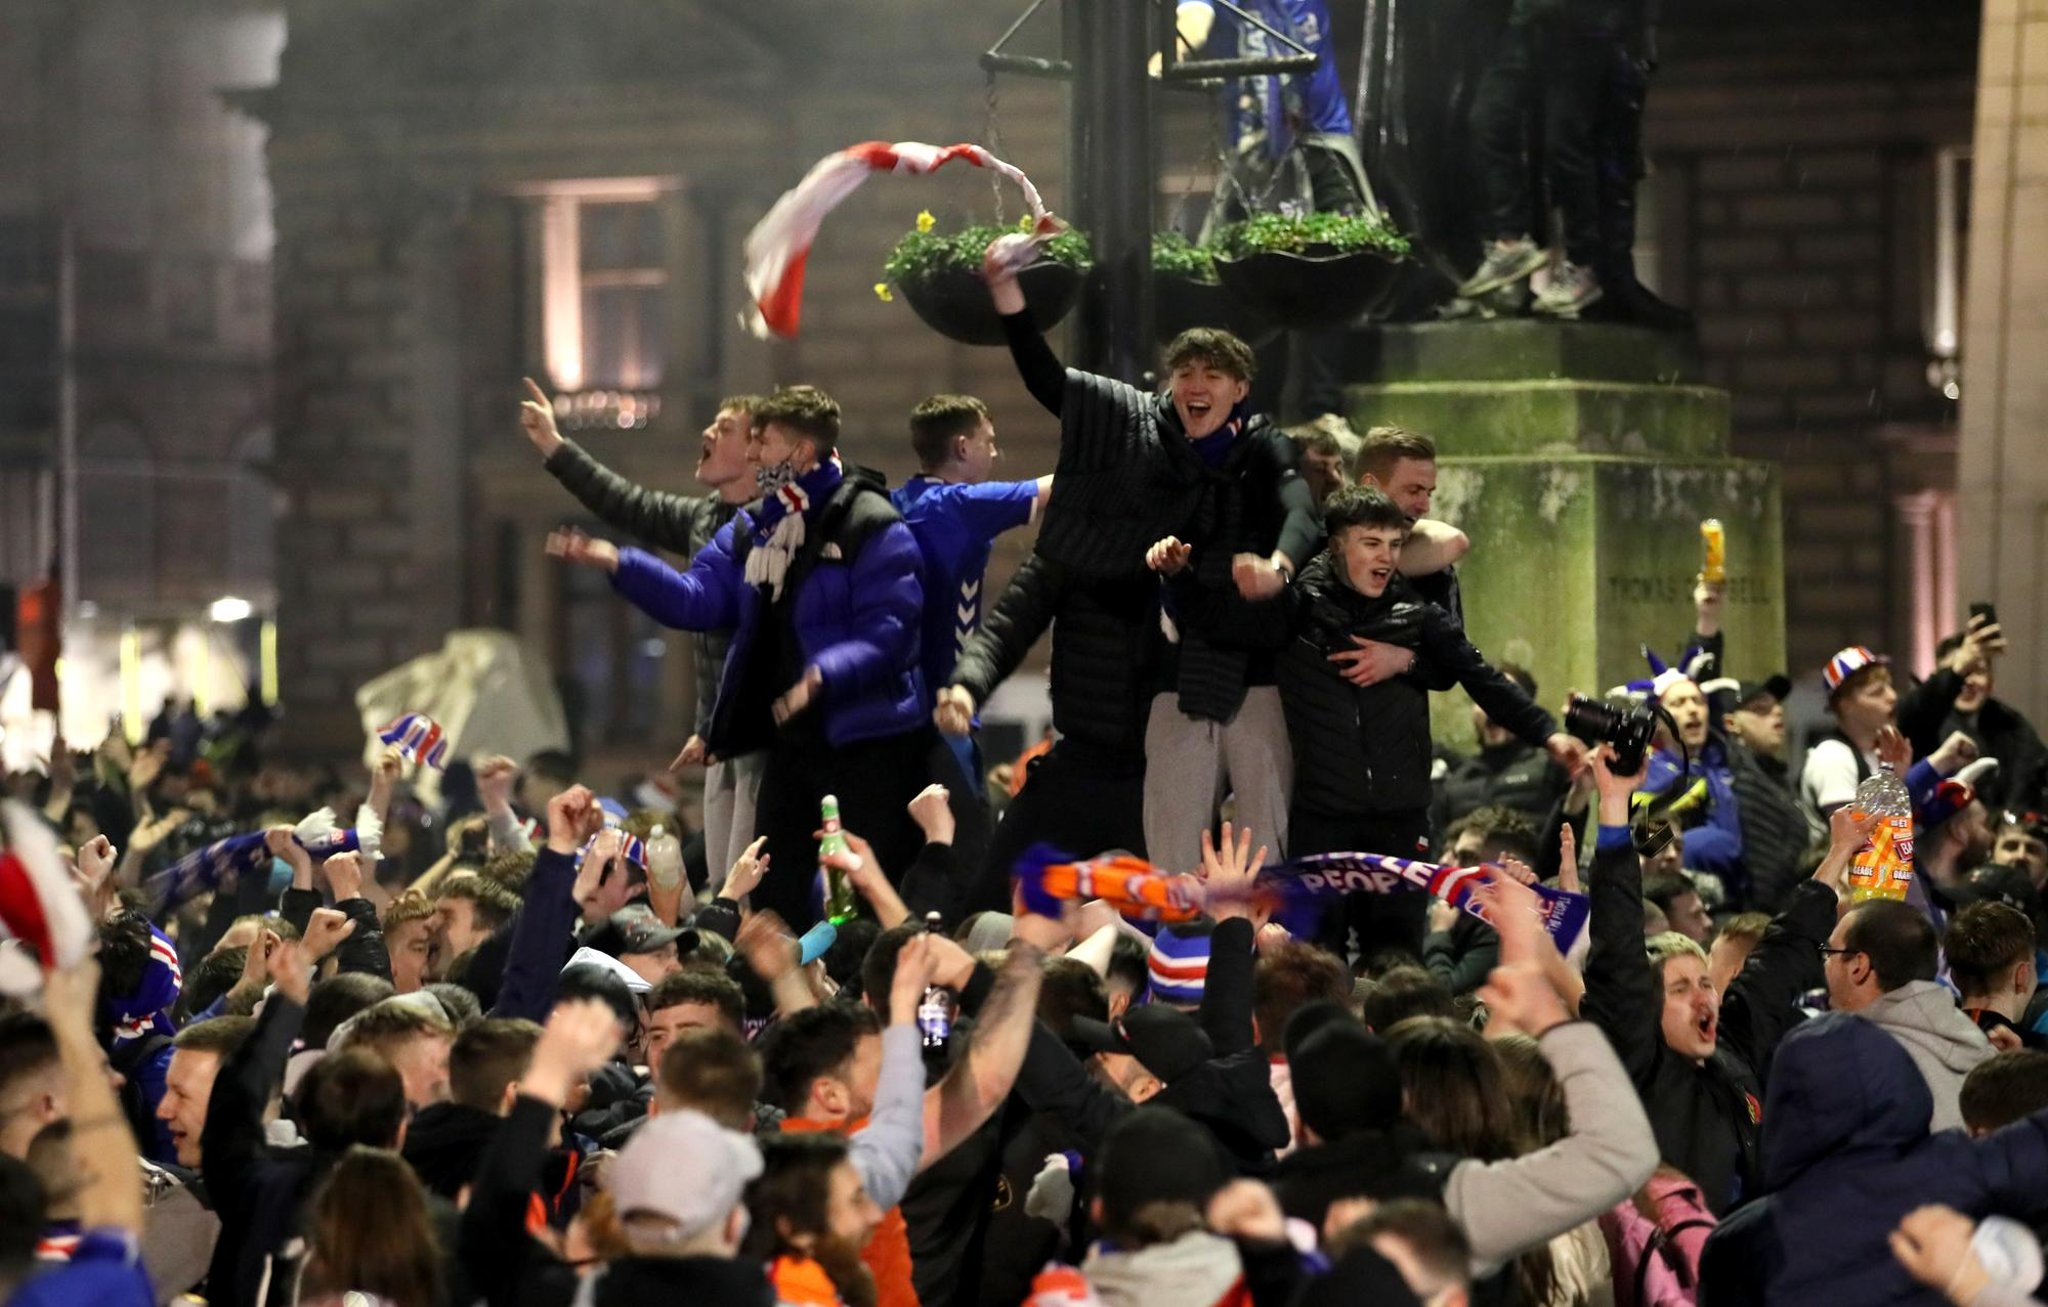 Search for families linked to Glasgow memorial benches smashed up in Rangers victory celebrations